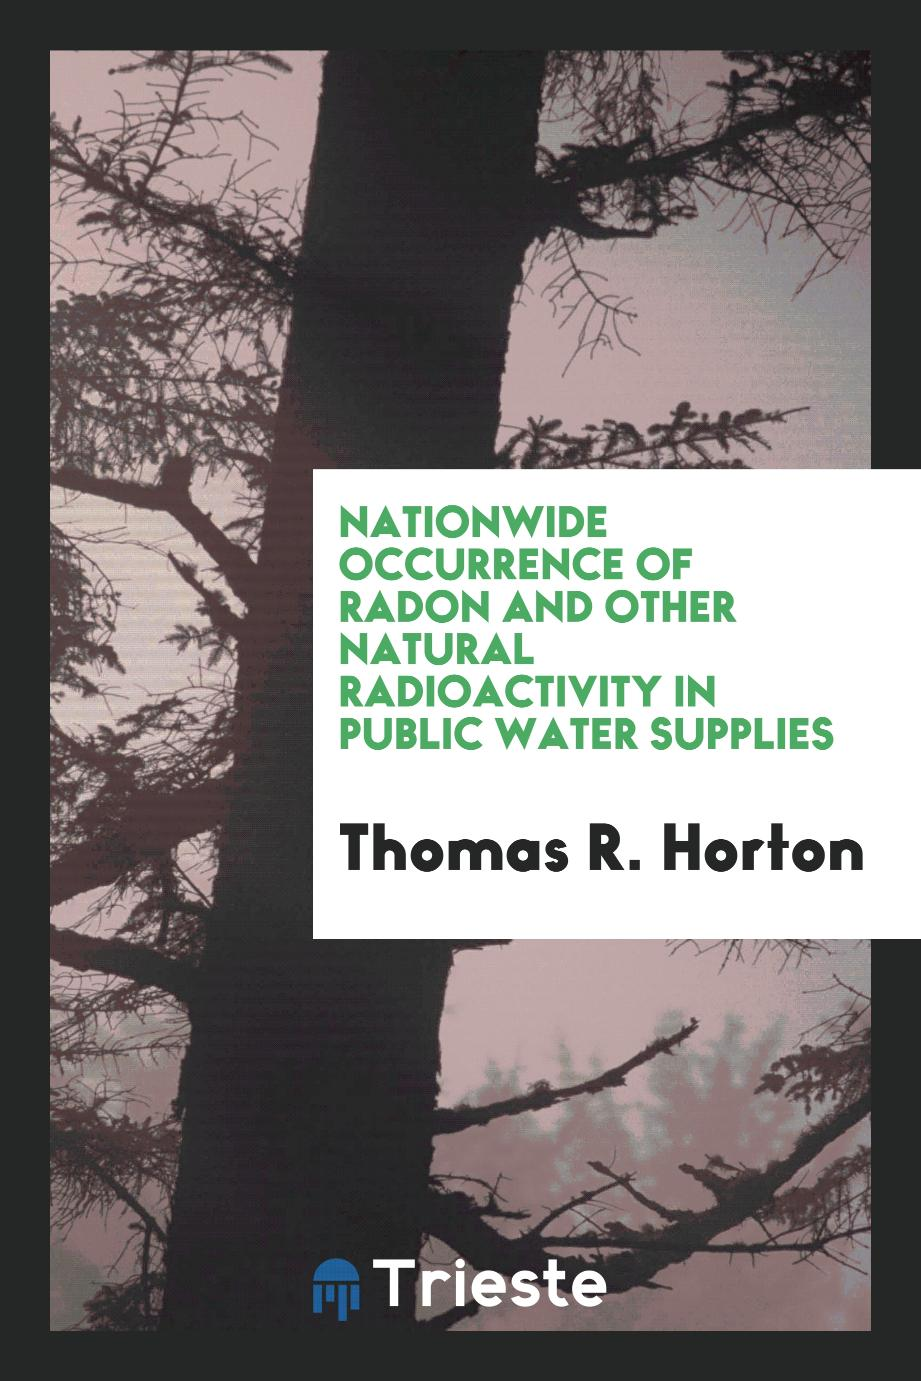 Nationwide occurrence of radon and other natural radioactivity in public water supplies